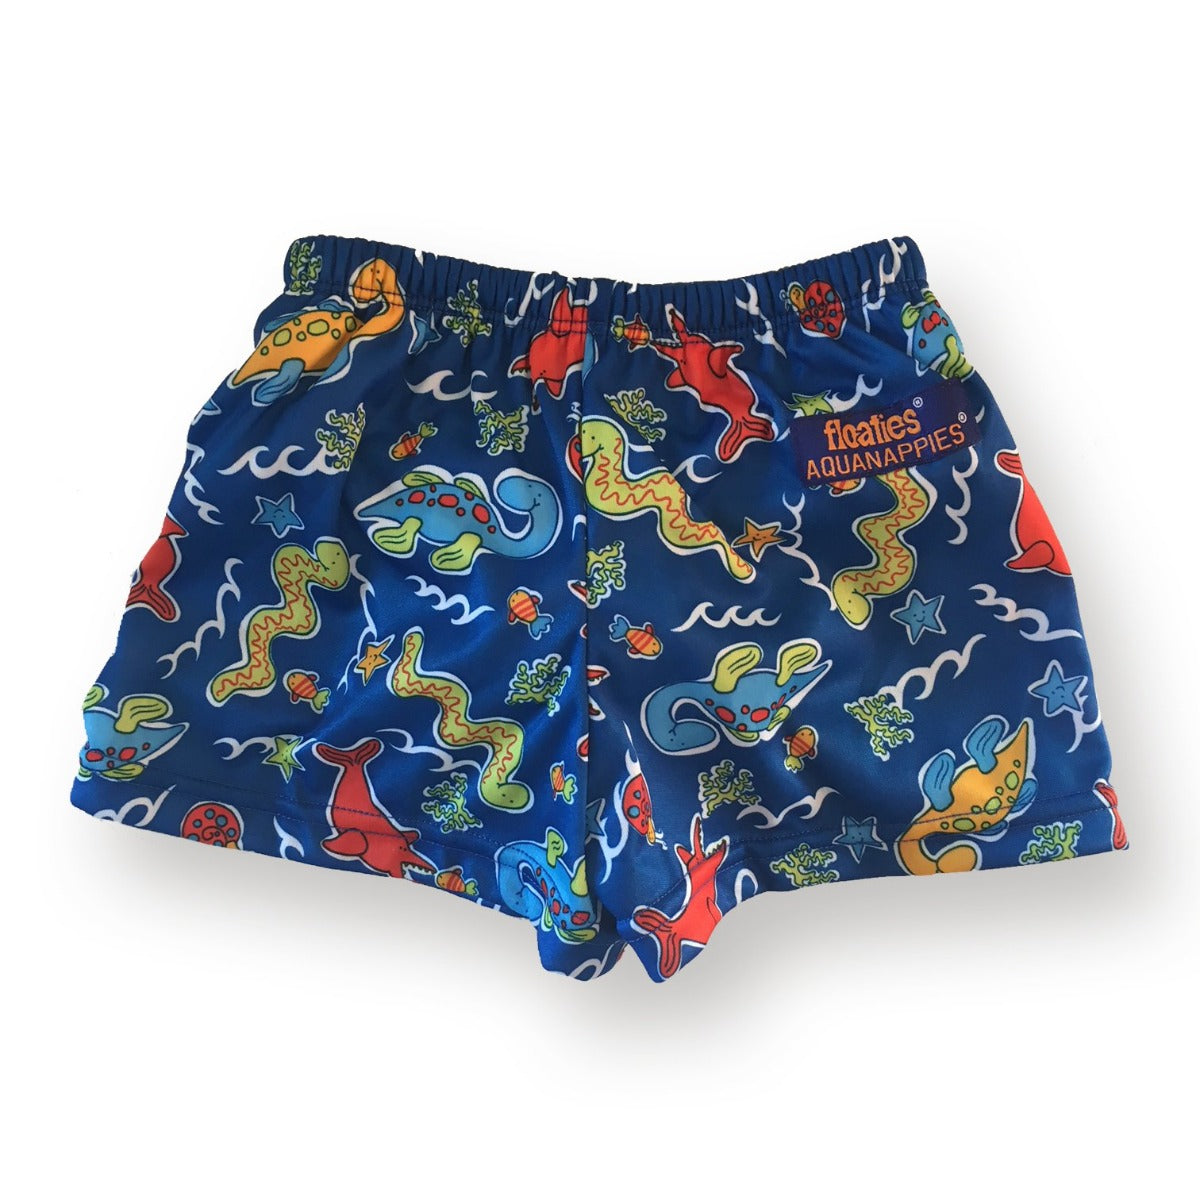 Floaties Aquanappy Shorts